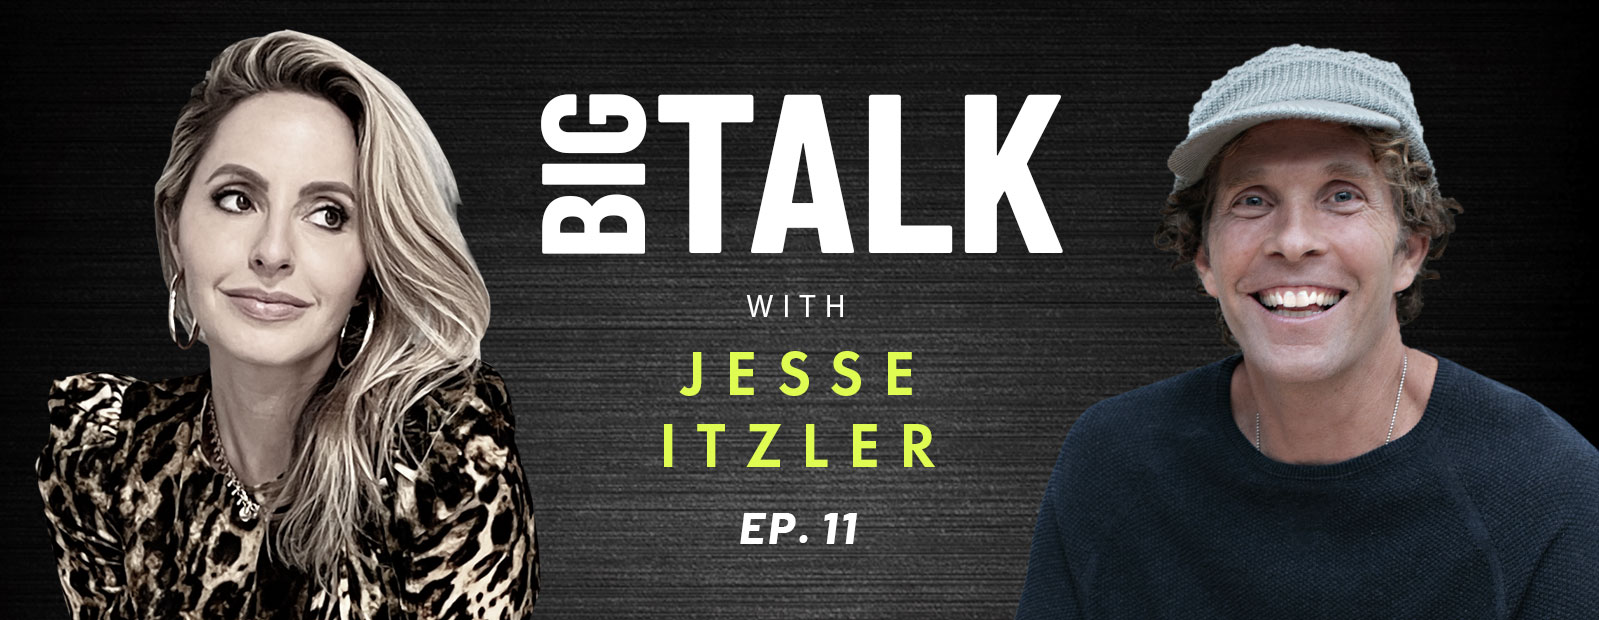 Success Habits for Manifesting a Life With NO Regret —Big Talk with Jesse Itzler